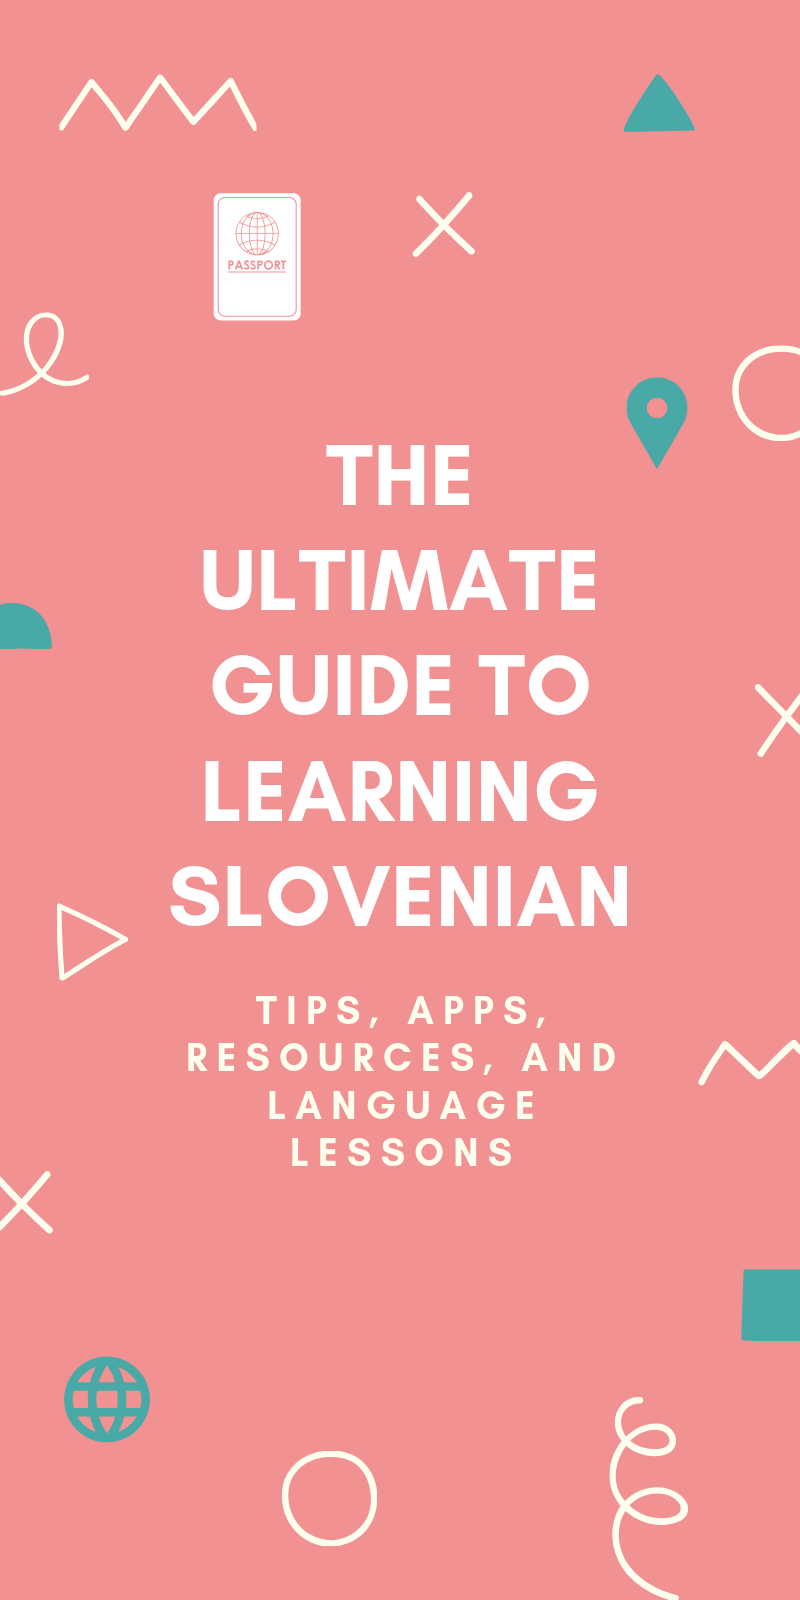 Everything you need to help you learn Slovenian. Dictionaries, teachers, language schools, videos, books, and so much more. This is the ultimate list of resources. No other can compare! Start learning Slovenian today. #slovene #slovenian #languagelearning